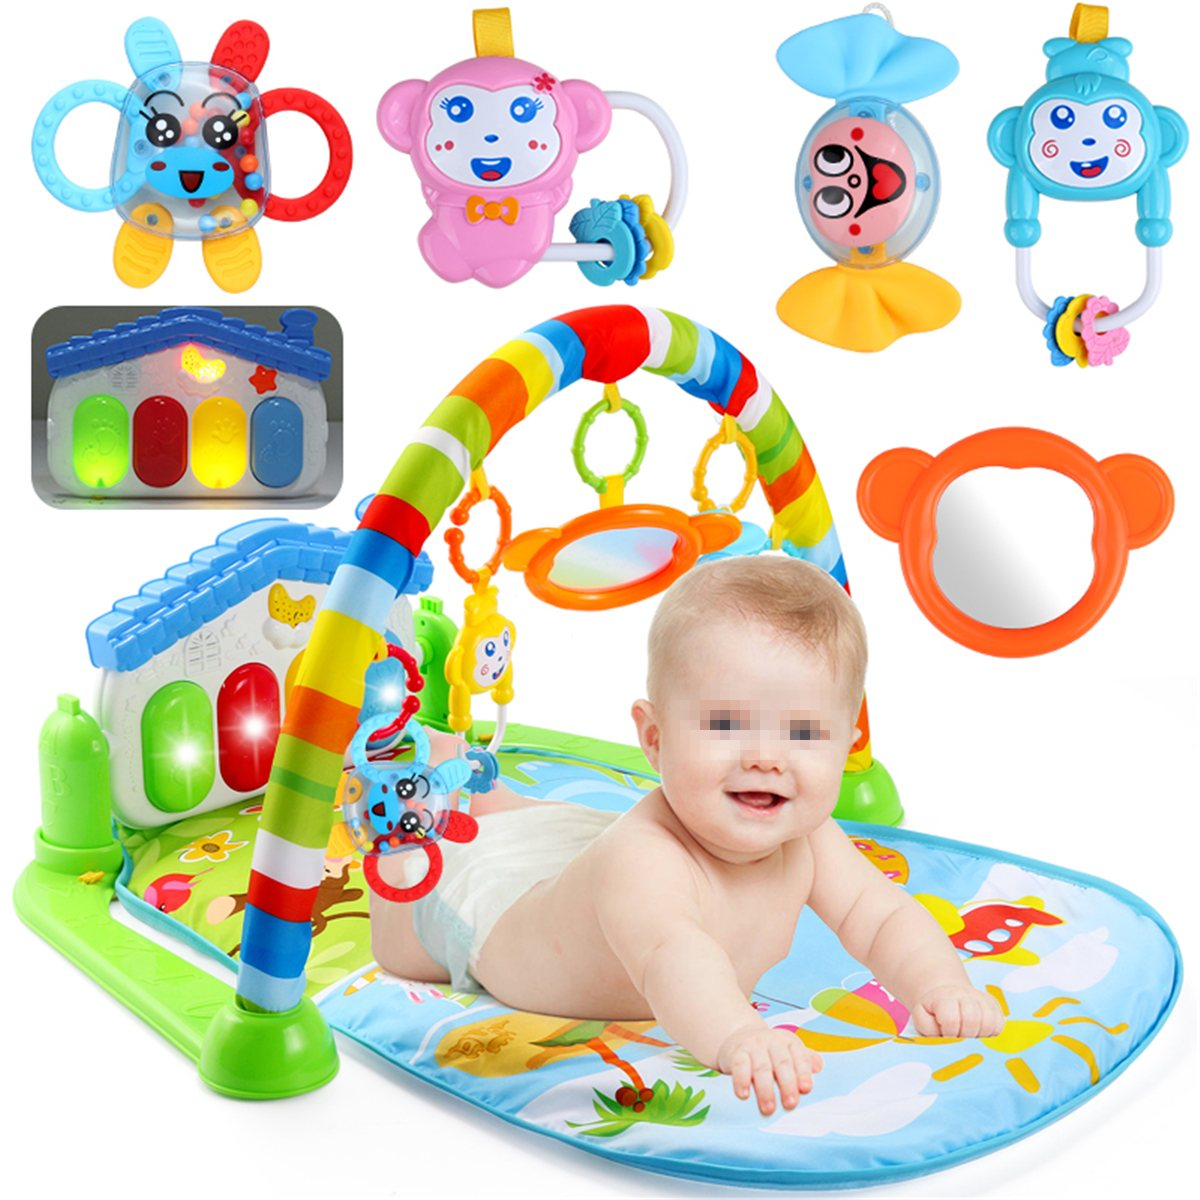 3 In 1 Newborn Infant Baby Game Bed Baby Toddler Cribs Crawling Activity Gym Mat Floor Blanket Kids Toys Carpet Bedding Soft